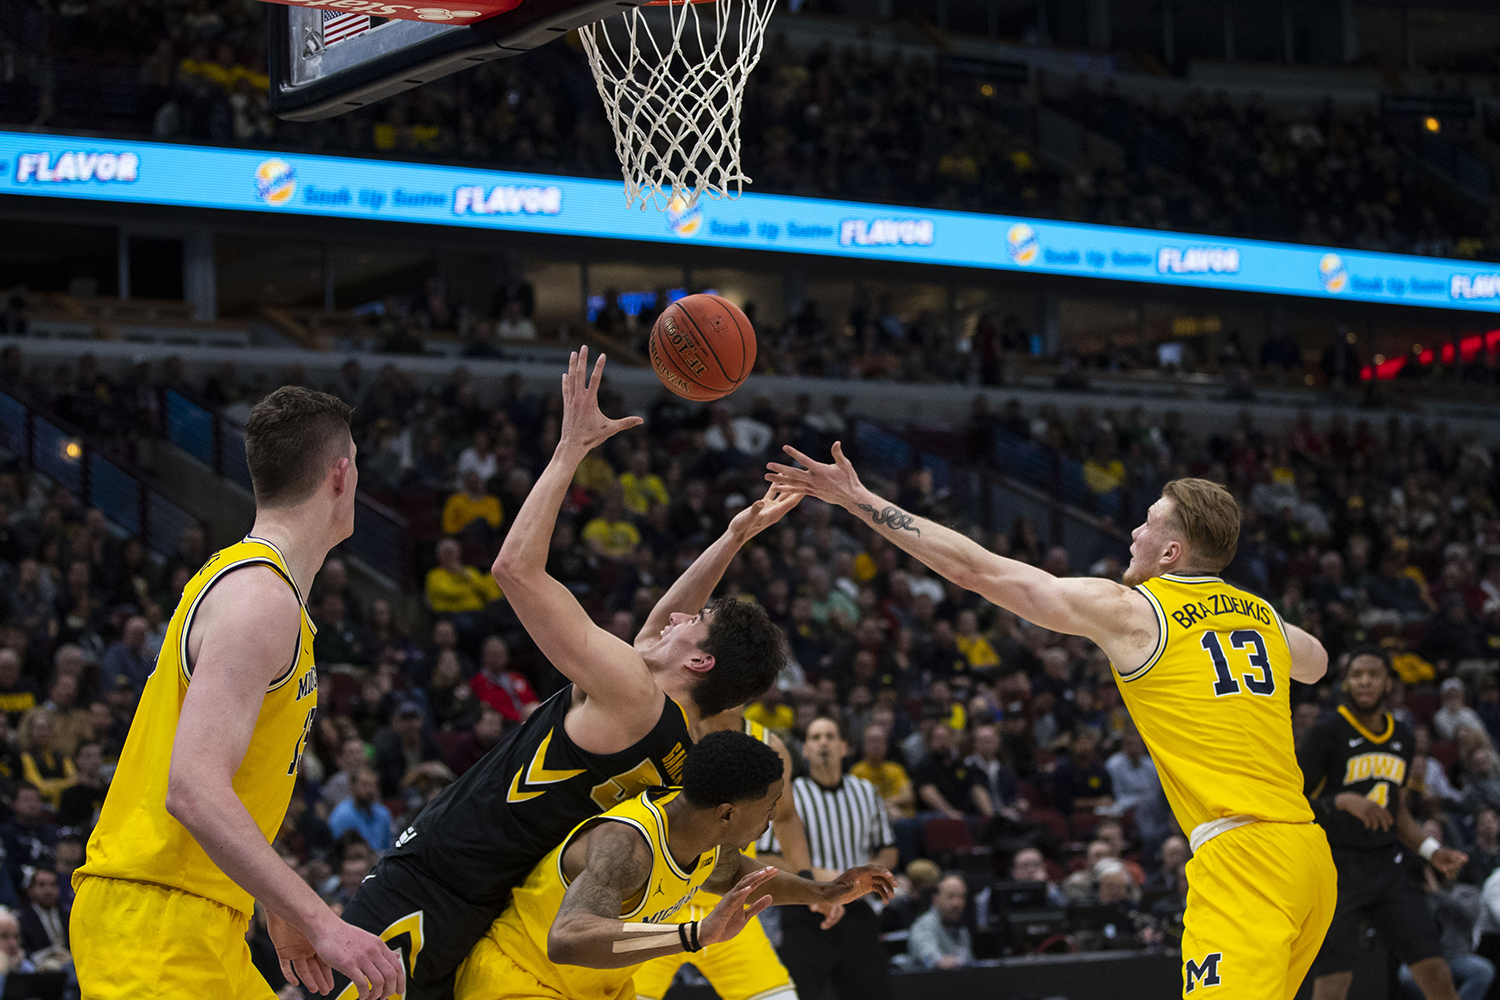 Iowa+forward+Luka+Garza+attempts+to+grab+a+rebound+during+the+Iowa%2FMichigan+Big+Ten+Tournament+men%27s+basketball+game+in+the+United+Center+in+Chicago+on+Friday%2C+March+15%2C+2019.+The+Wolverines+defeated+the+Hawkeyes%2C+74-53.+